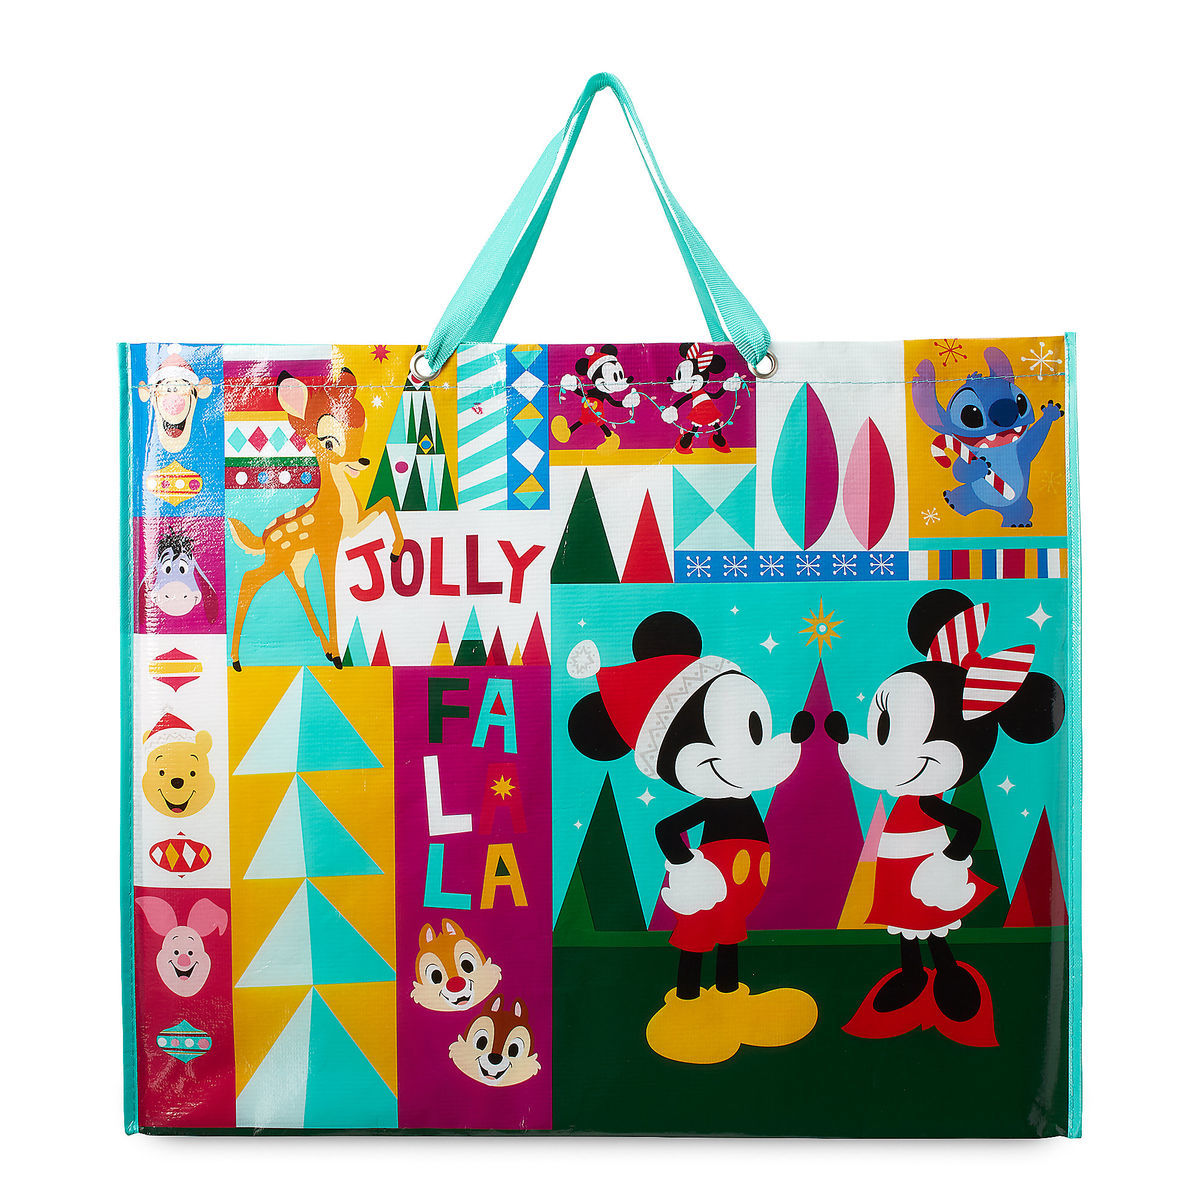 Product Image of World of Disney Holiday Reusable Tote # 1